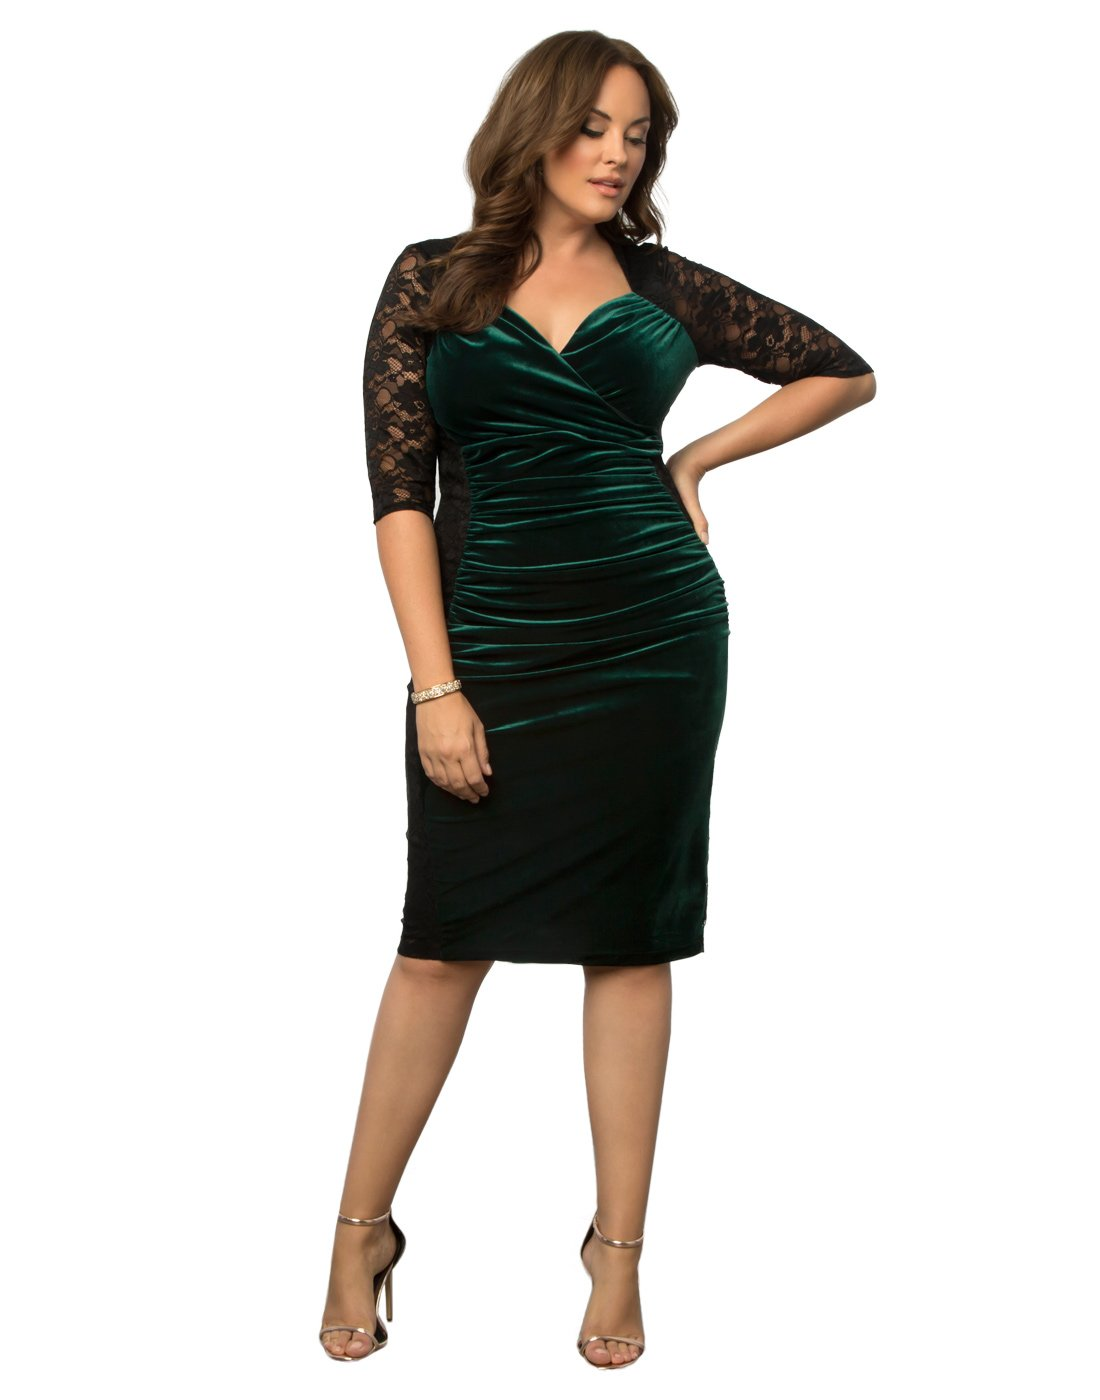 Kiyonna Women's Plus Size Hourglass Lace Dress 4X Garden Estate by Kiyonna Clothing